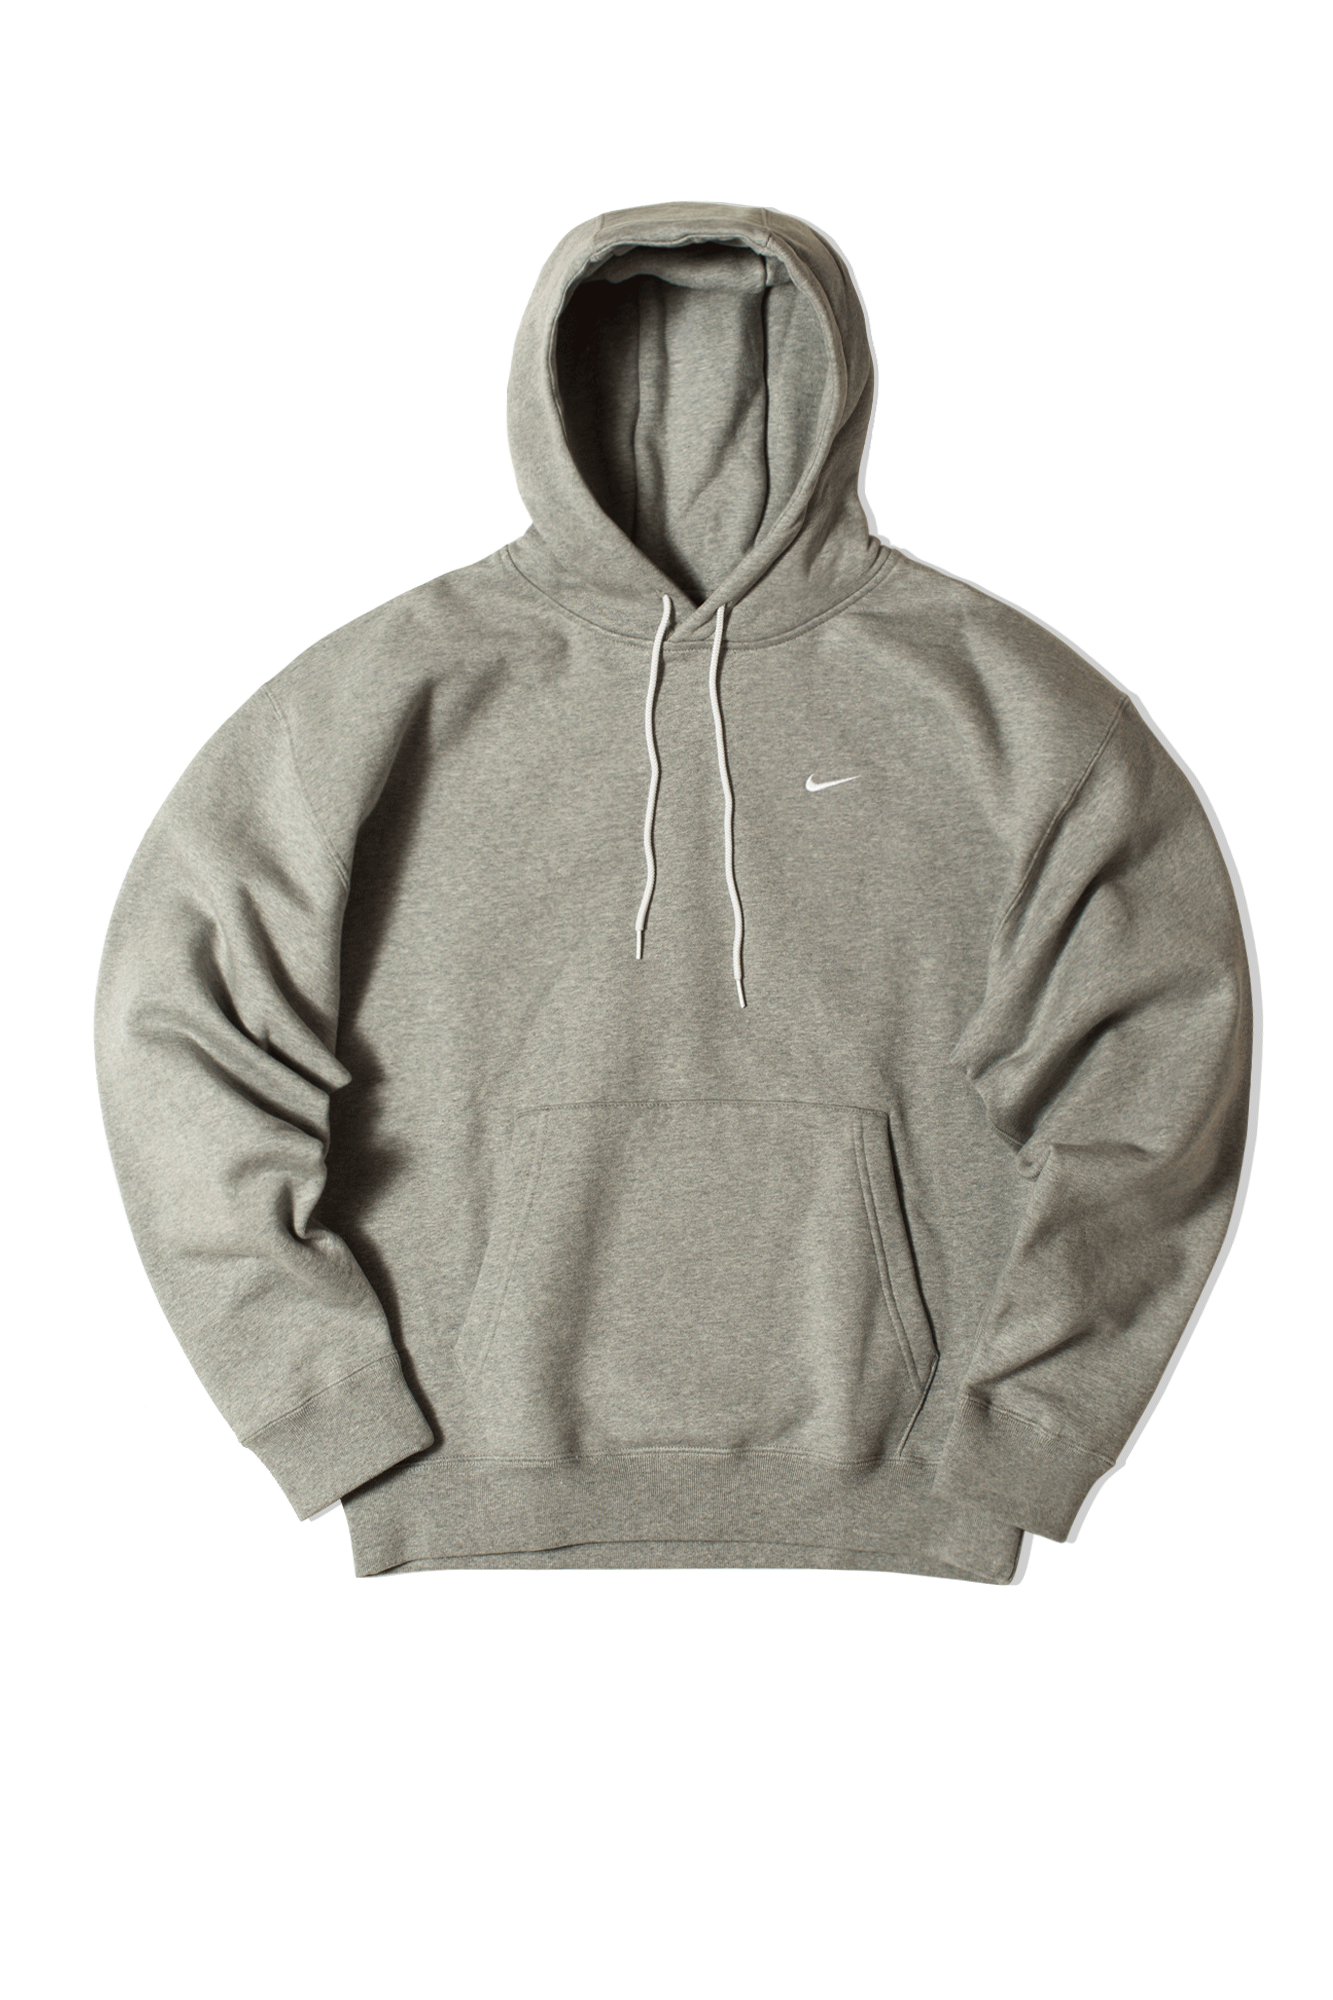 NRG Soloswoosh Hooded Sweatshirt